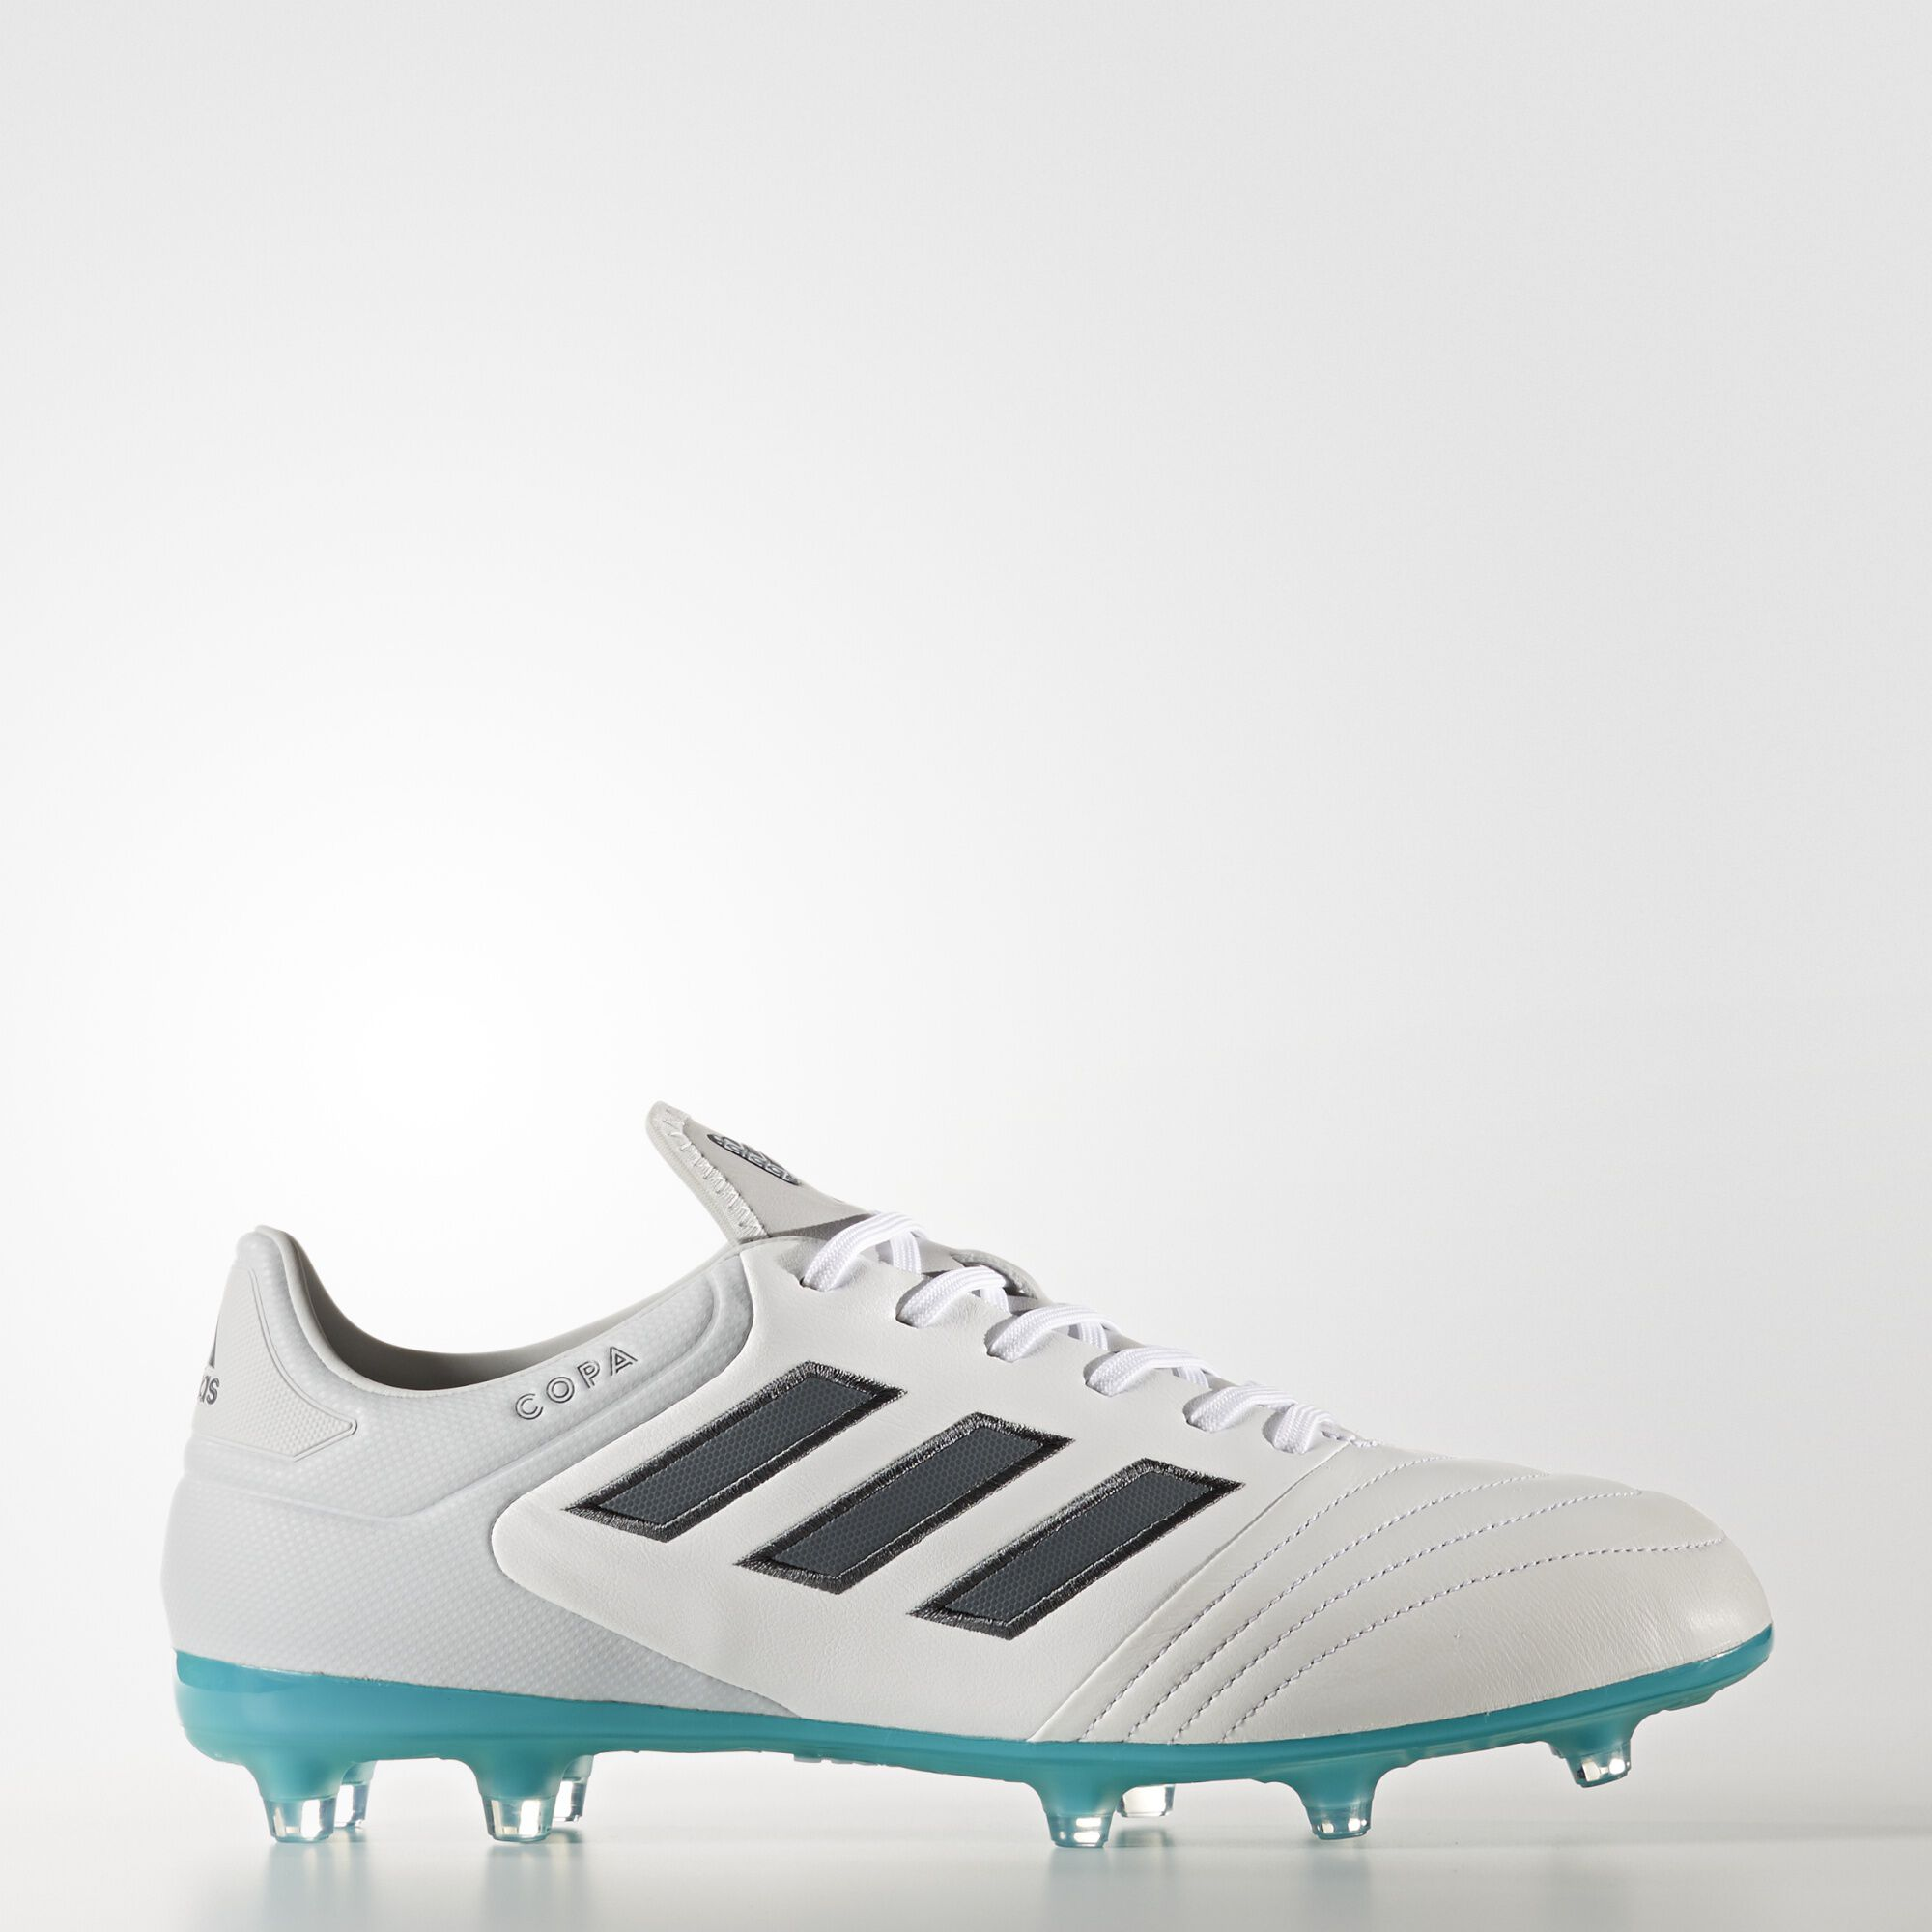 quality design 4441f 11638 adidas predator absolado  adidas copa 17.2 firm ground cleats running white  ftw onix clear grey s77135